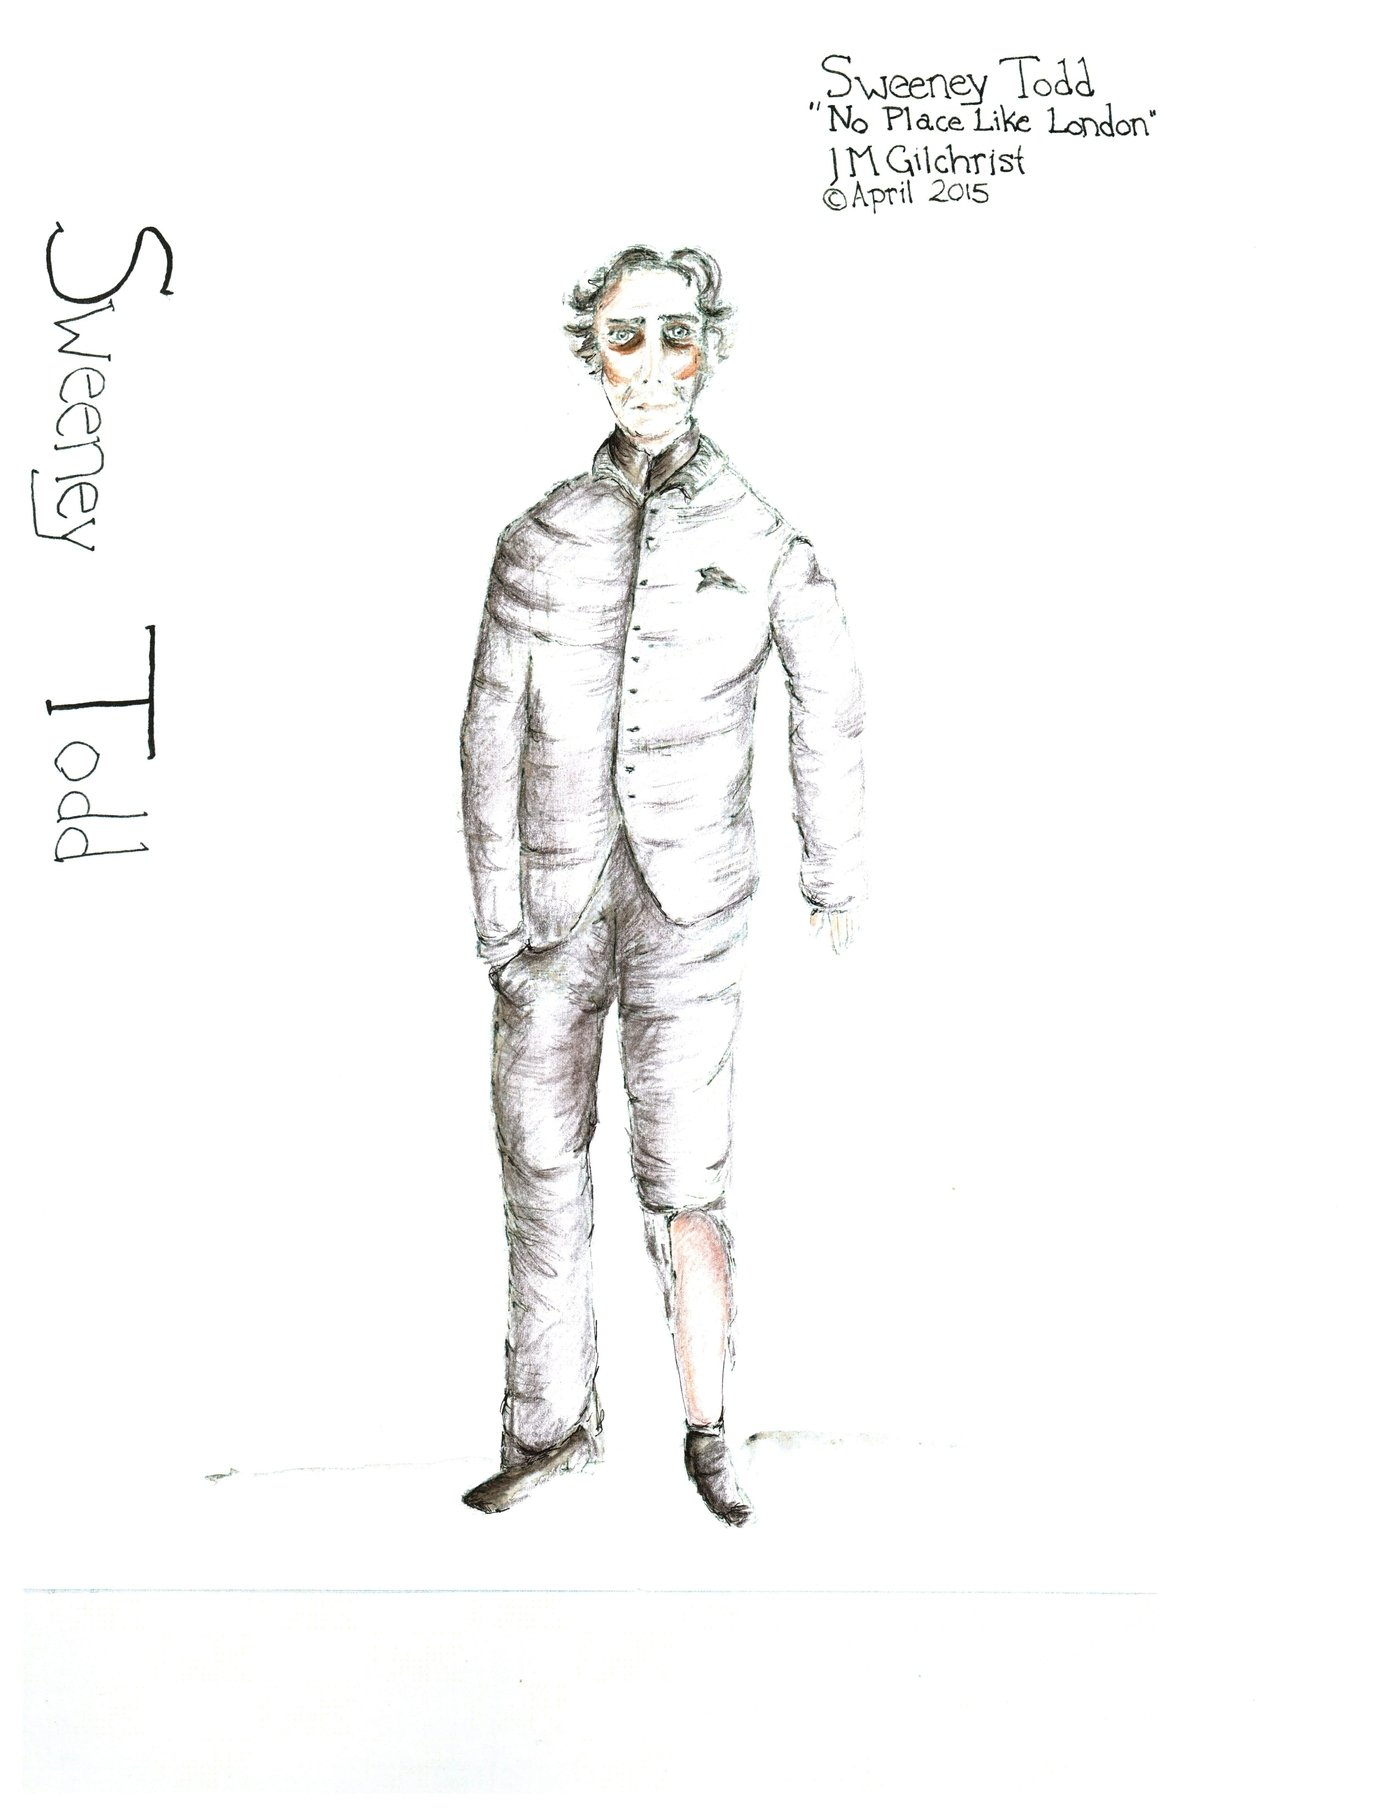 Sweeney Todd Costume Designs By Jacqueline Gilchrist At